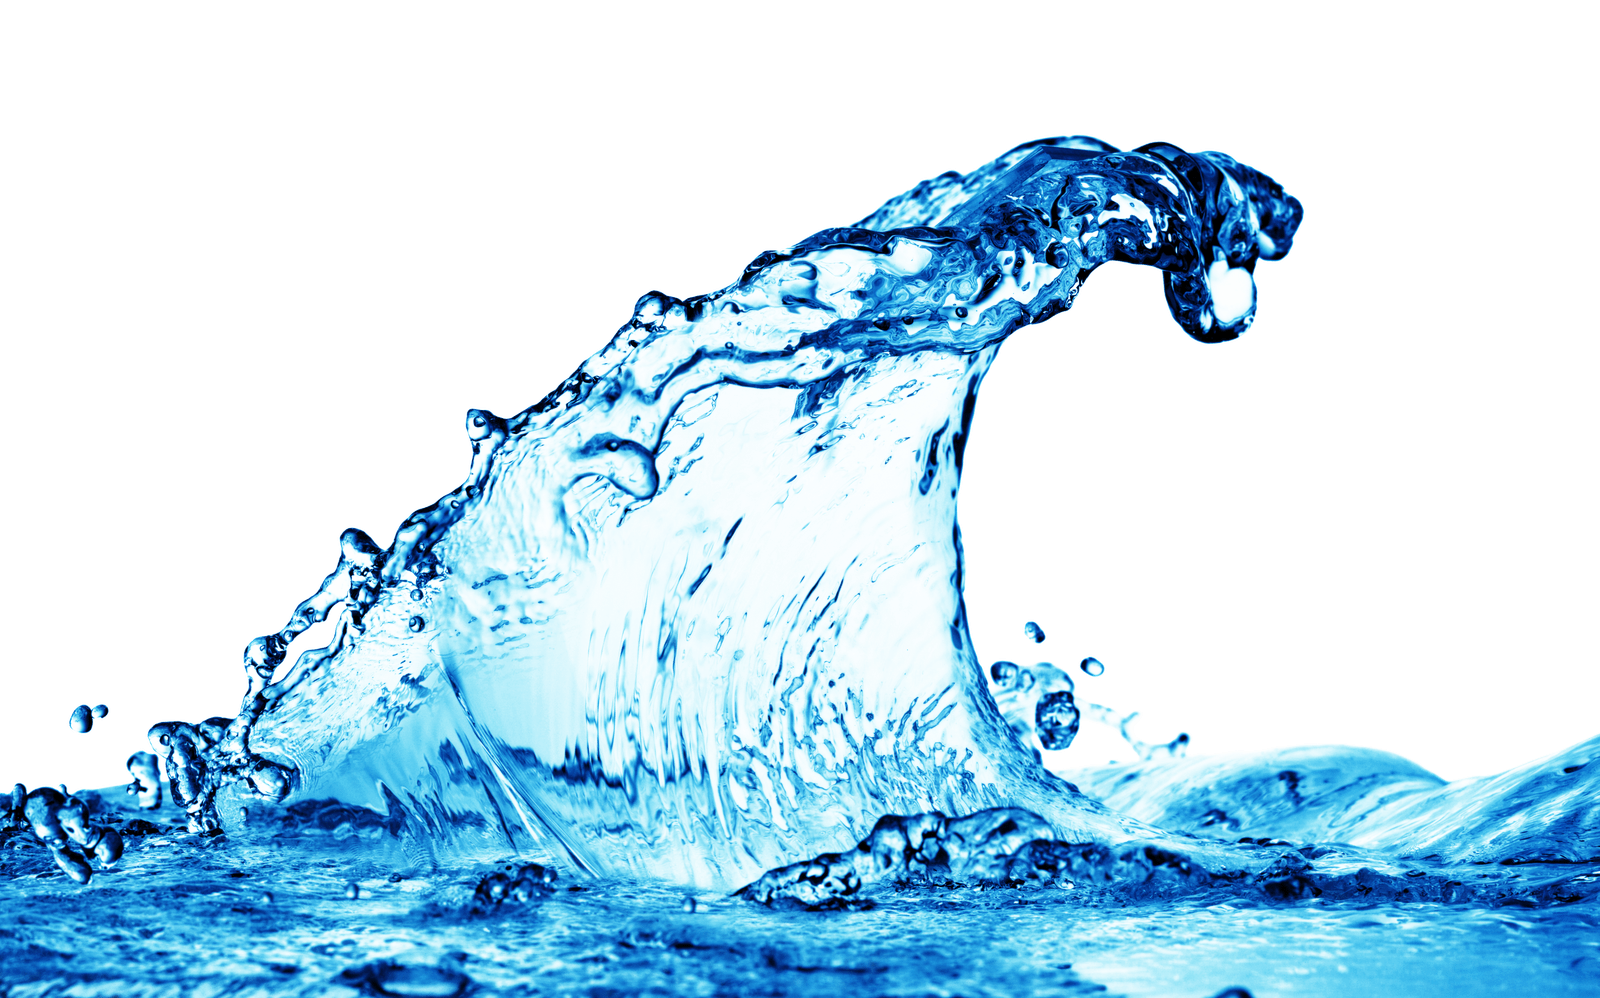 Waves transparent png. Wave photo stickpng download